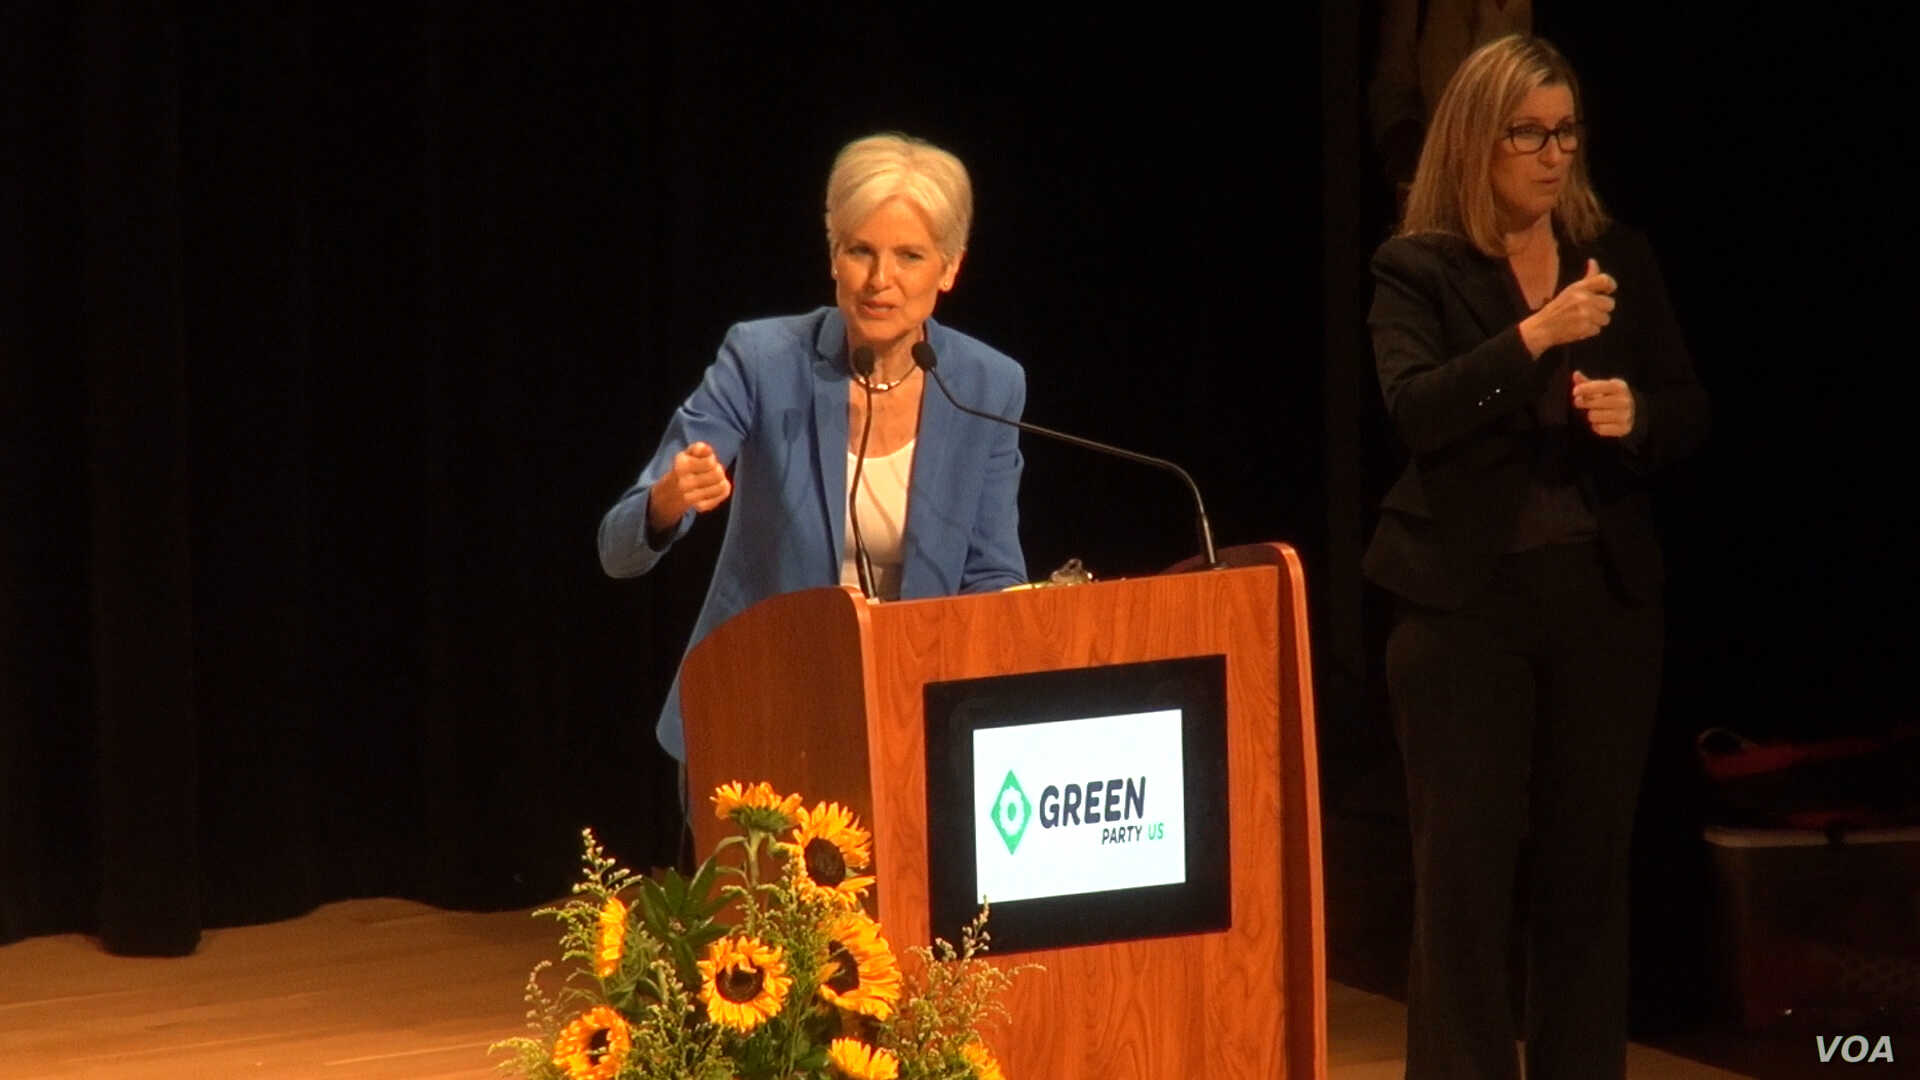 In her Green Party presidential nomination acceptance speech in Houston, Jill Stein went through a list of left-of-center positions the party presents in its platform, including a government payoff of student loan debt, an end to free-trade agreement...